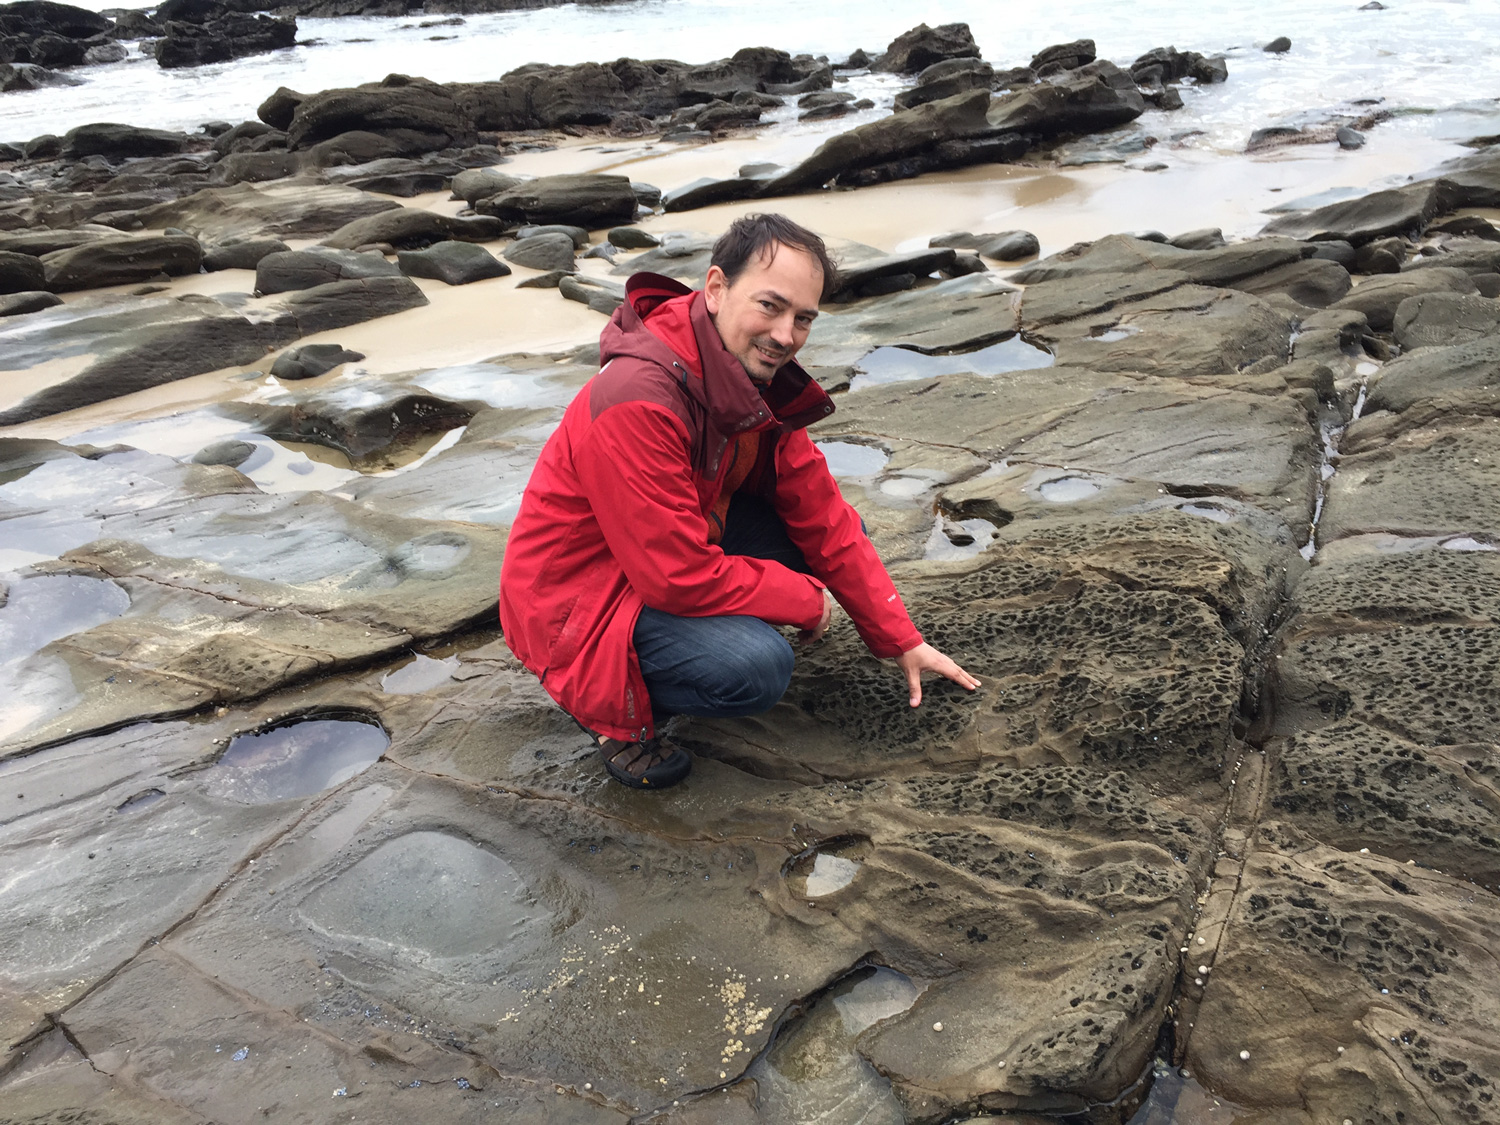 Gothenburgs geochemist Dr. Thomas Zack is currently on sabbatical in Australia